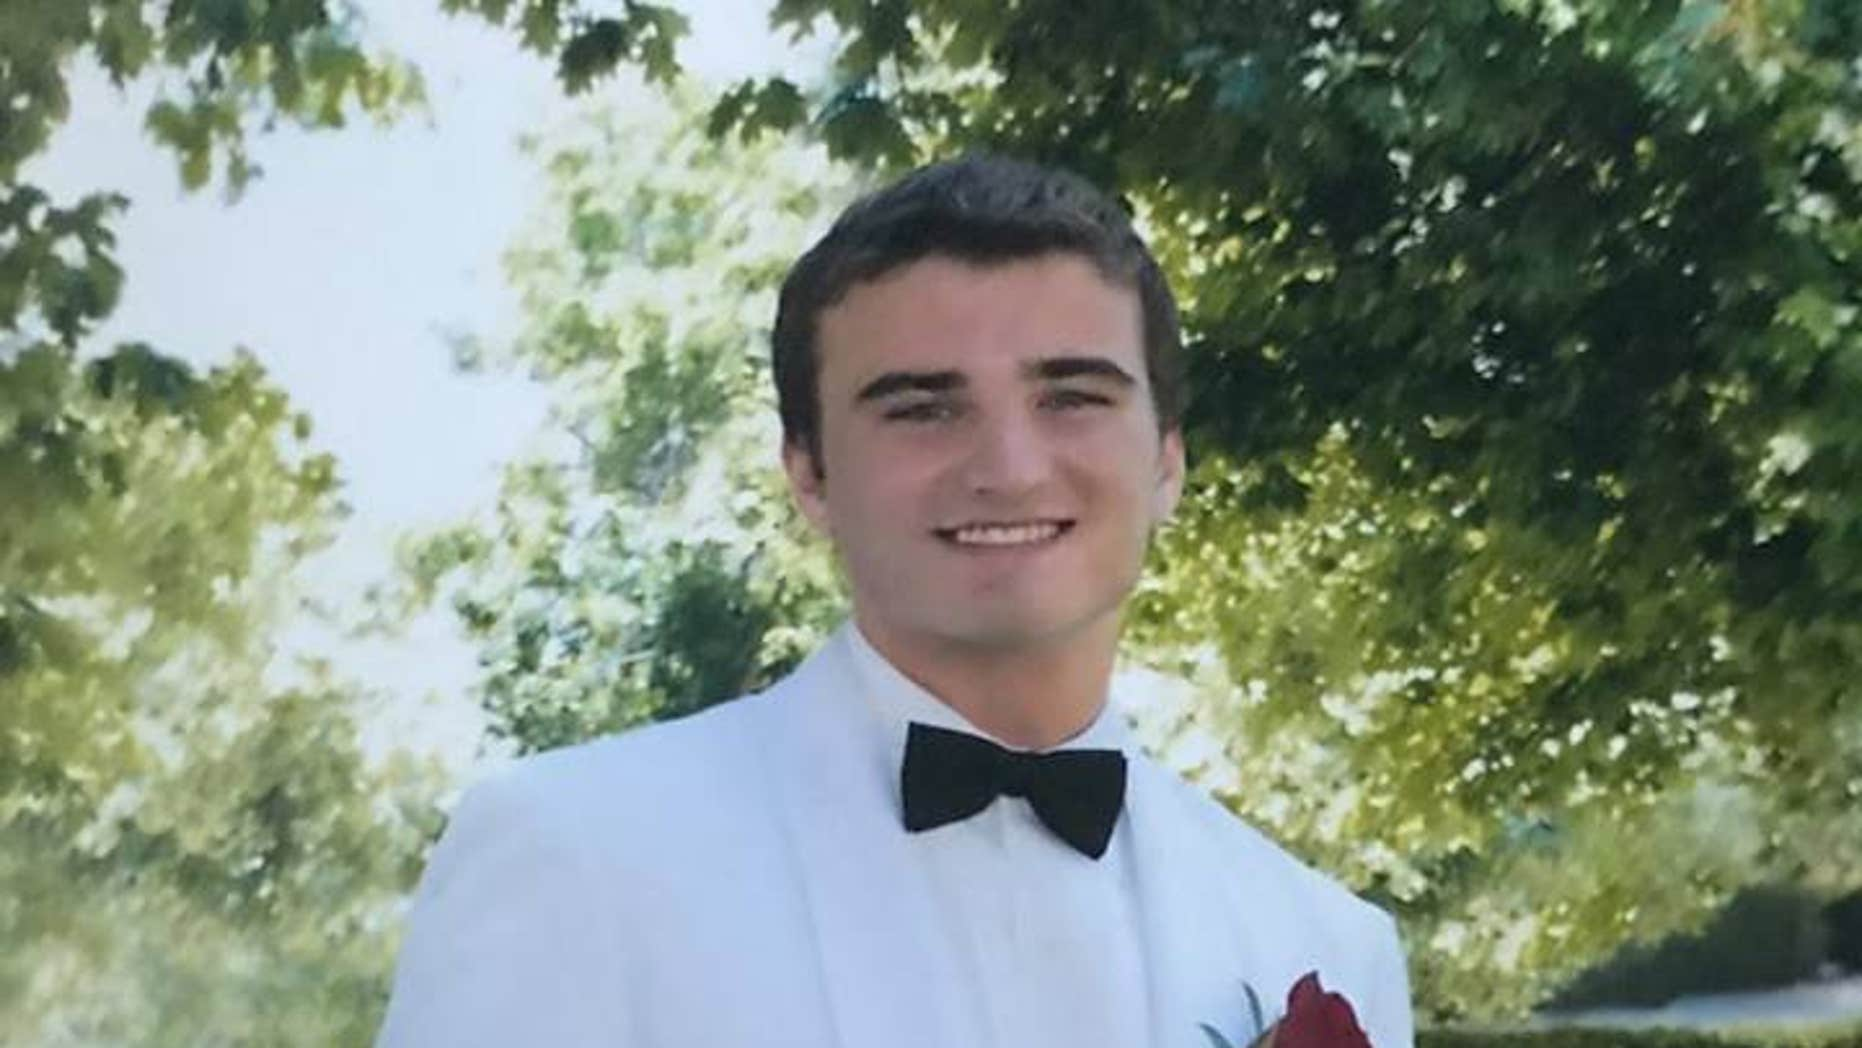 Gage Bellitto, who would have turned 20 on Dec. 25, was a Columbia University transfer looking to study economics. He died alone of a suspected opioid overdose on Dec. 22. (Facebook)